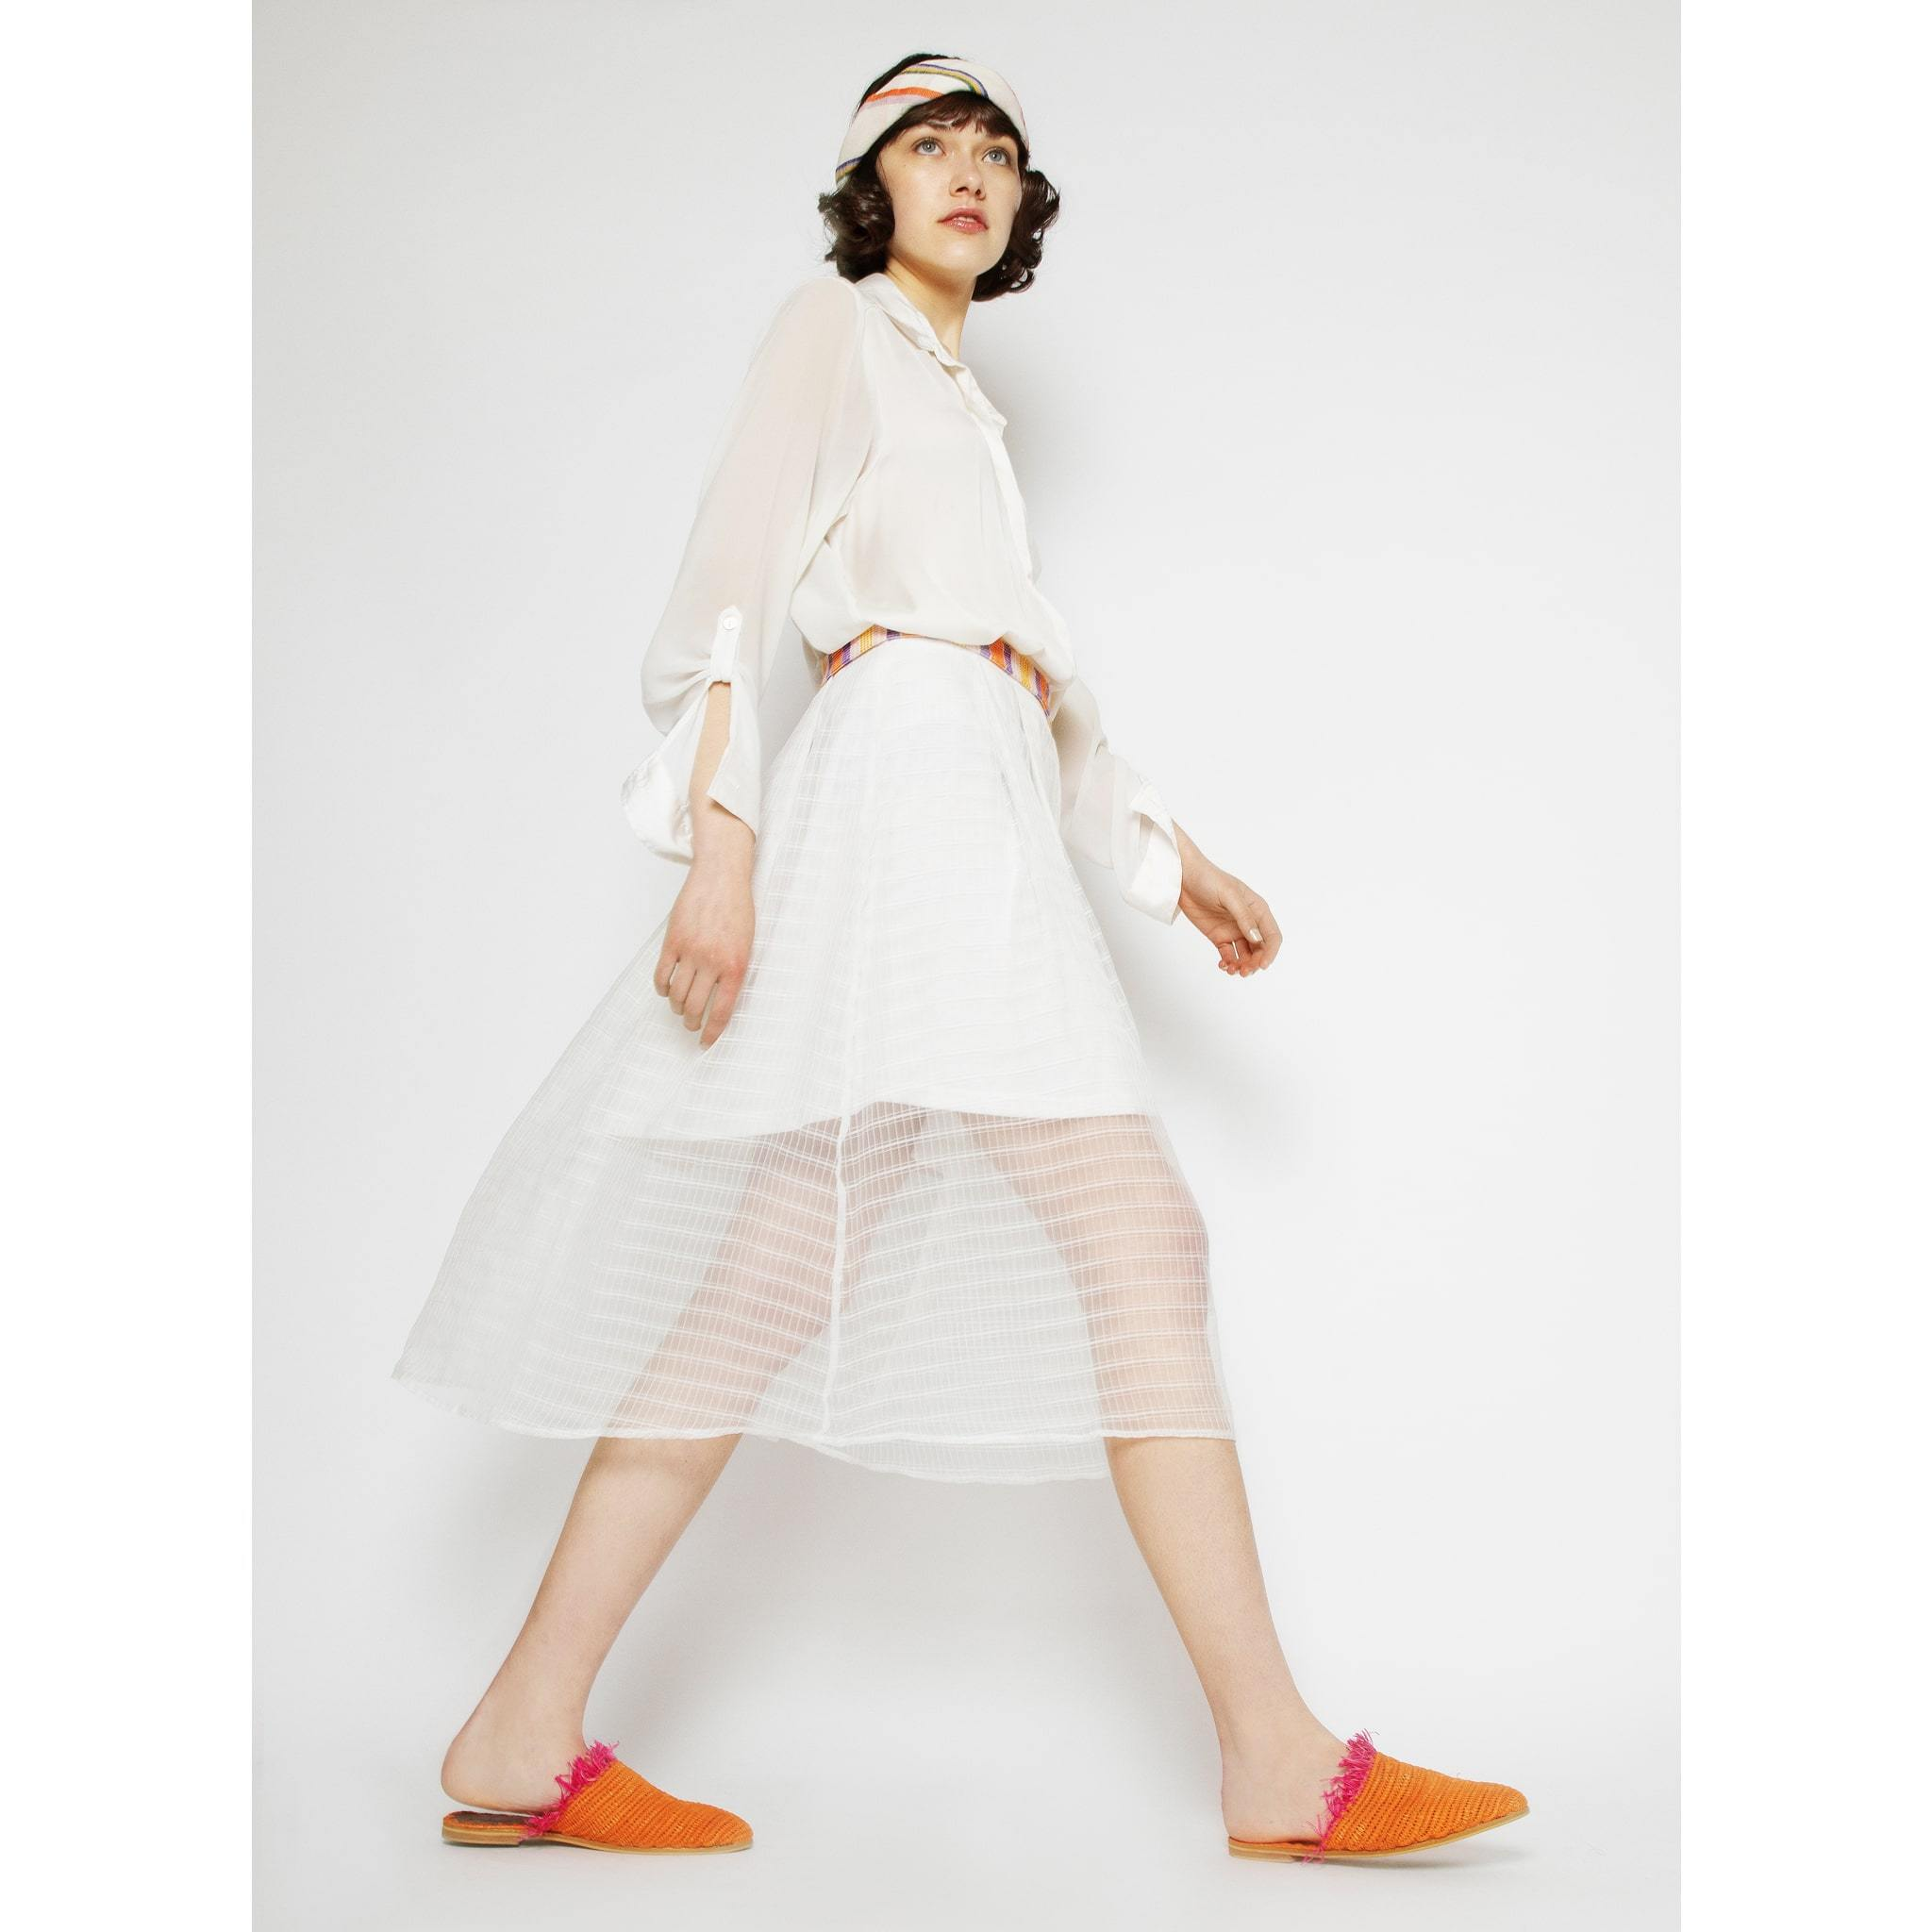 Raffia Slippers with Fringes in Orange, Pink from Abury